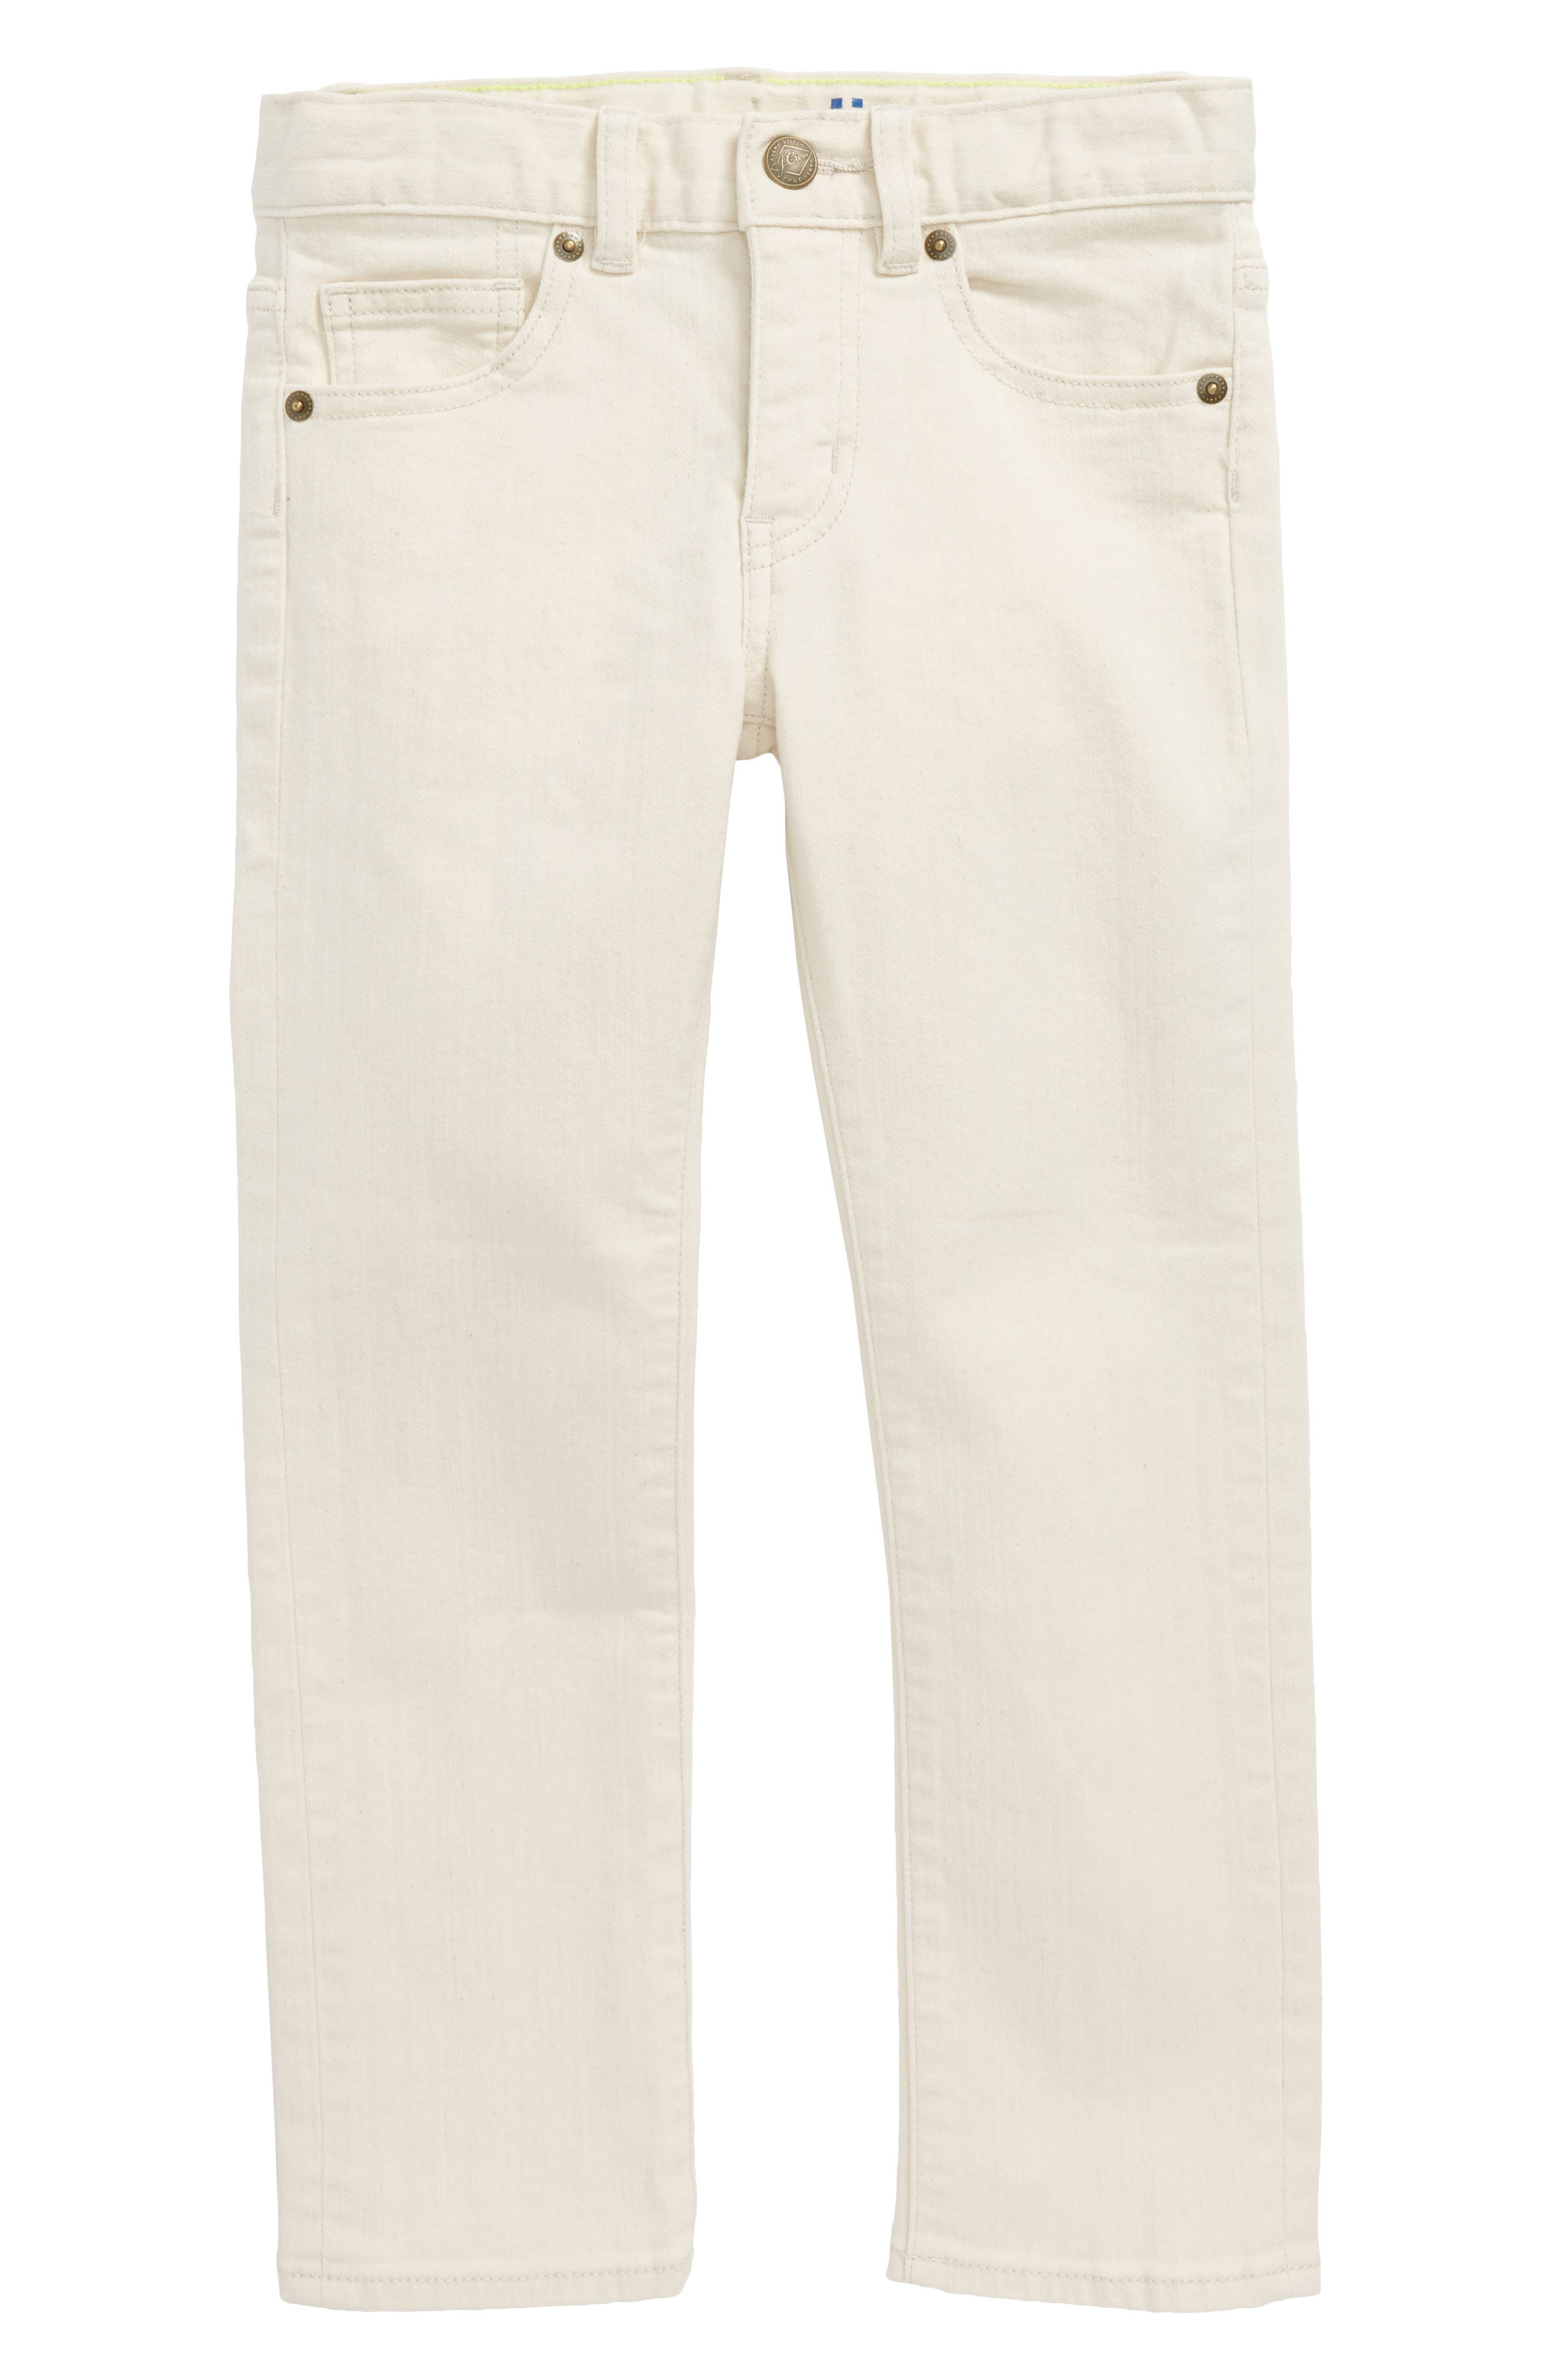 Ecru Slim Fit Pants,                         Main,                         color, Ecru